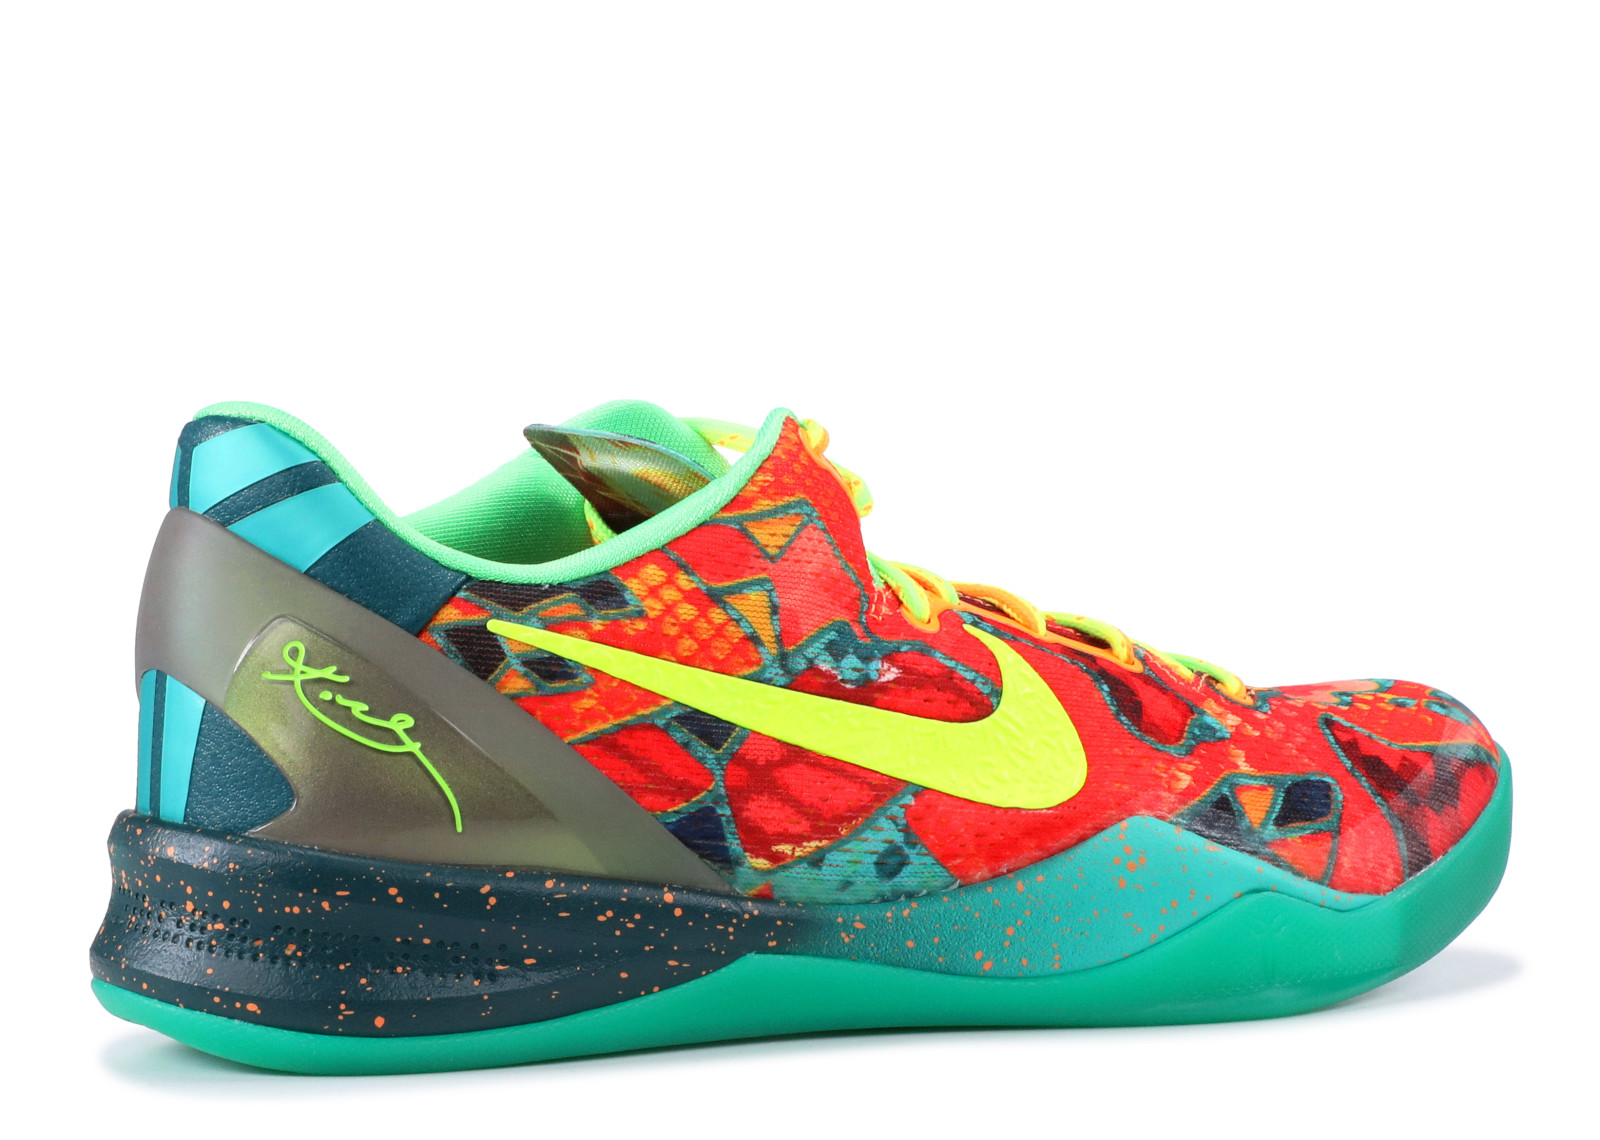 86ccb77230d5 Nike Kobe 8 What the Kobe (WTK) - 3